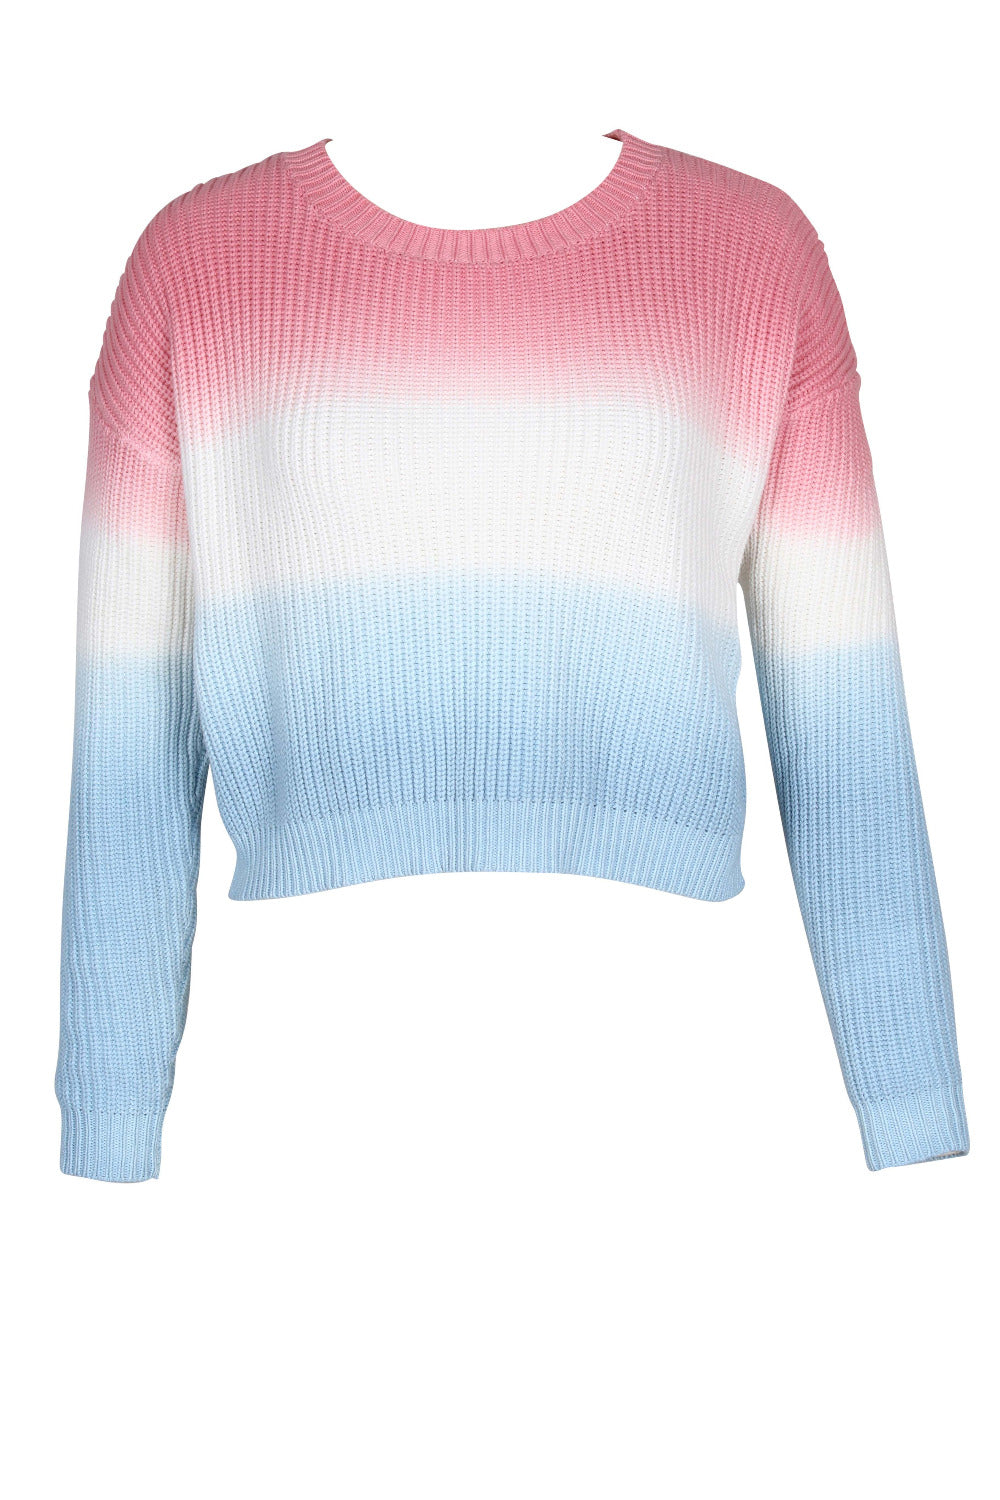 MINKPINK FINAL FORM SWEATER